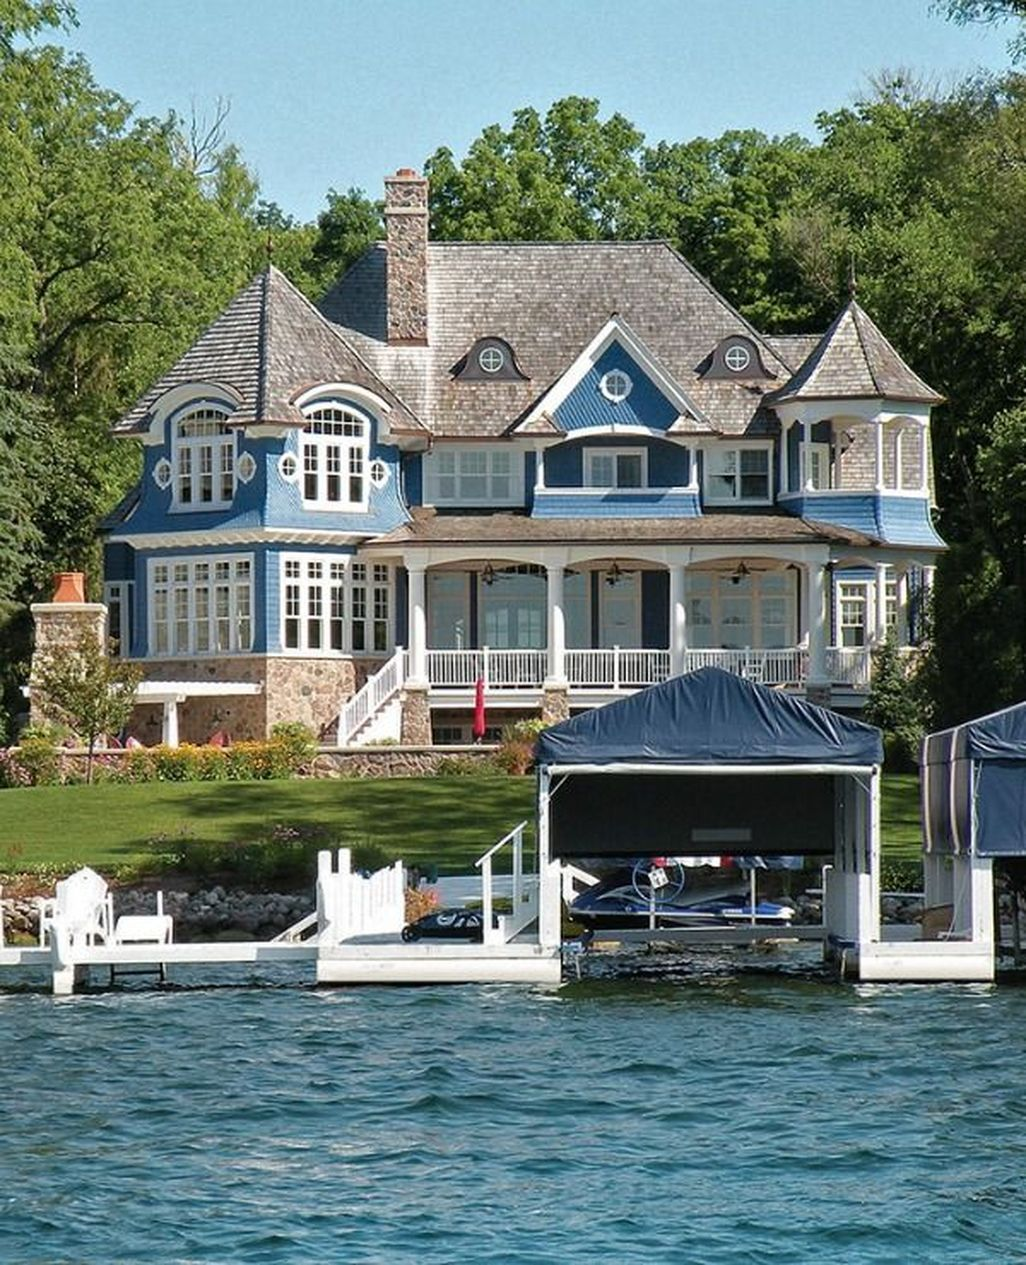 Luxury Lake Houses: Pin By Trend4homy On Trending Decoration In 2019